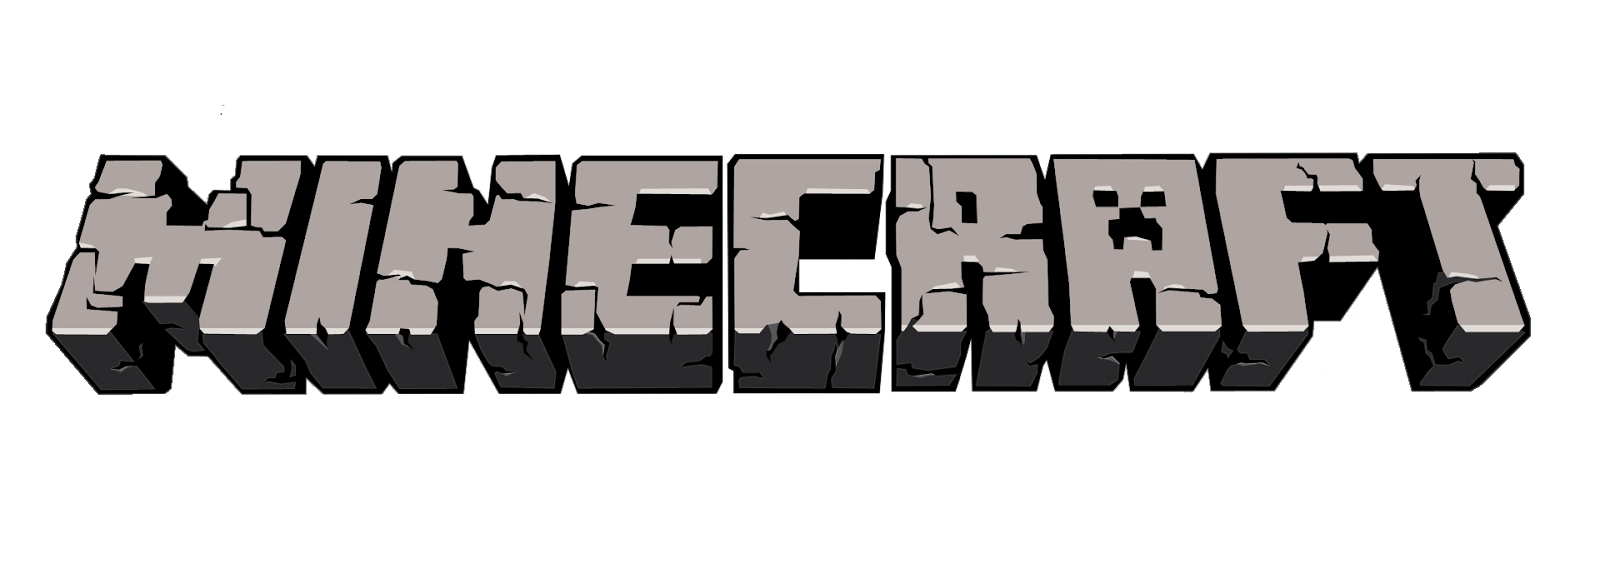 Minecraft logo . Word clipart block png royalty free download